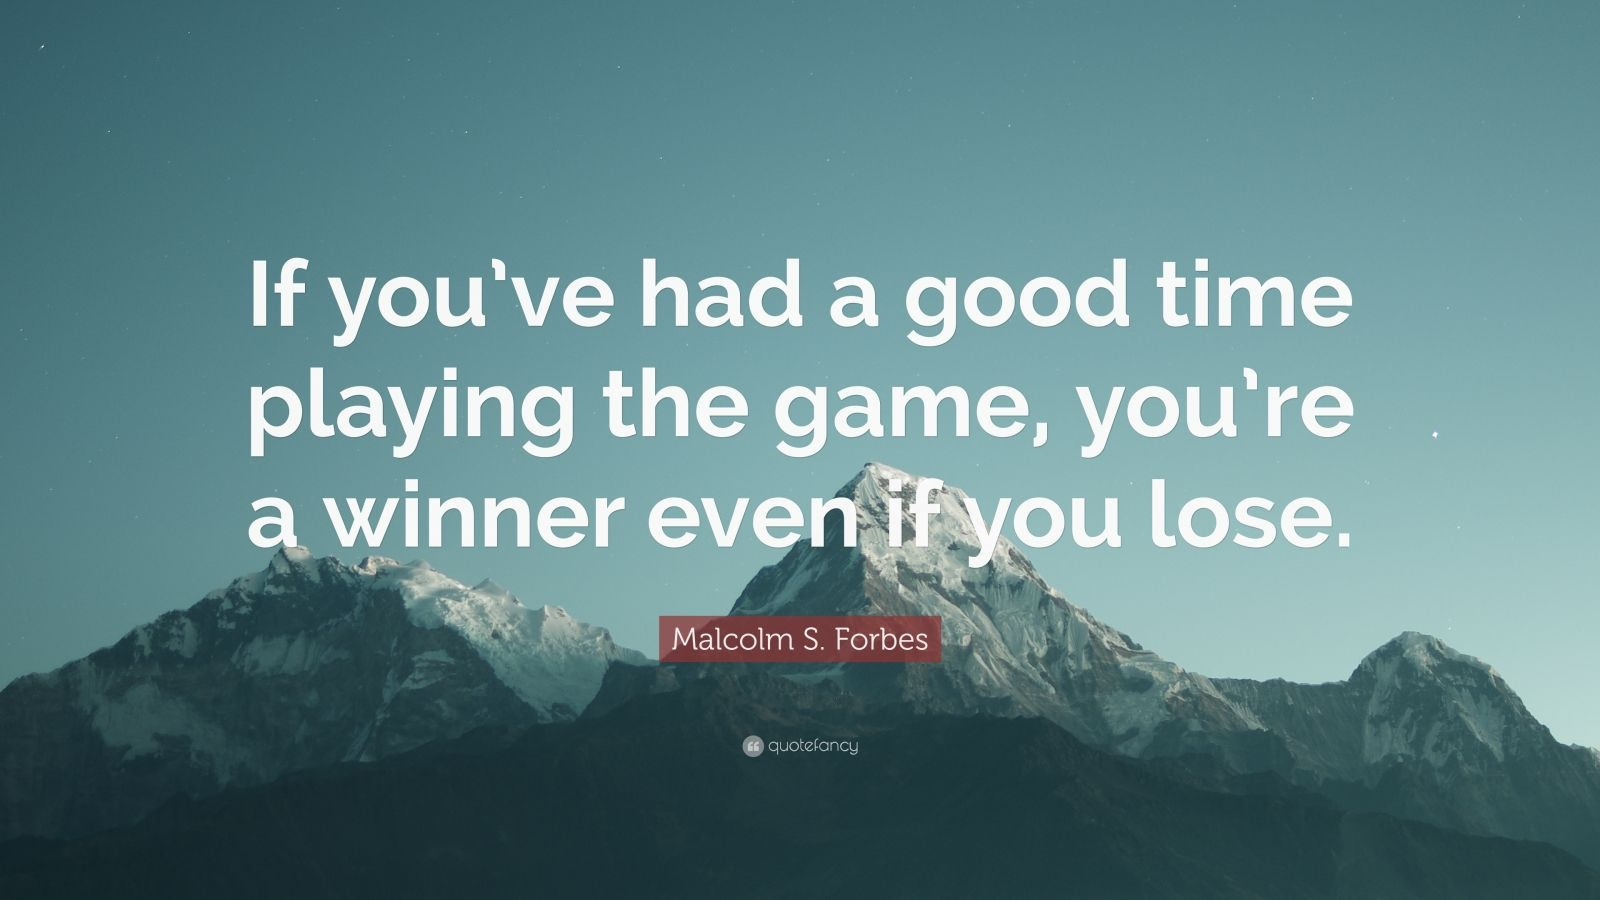 """Malcolm S. Forbes Quote: """"If you've had a good time playing the game, you're a winner even if you lose."""""""